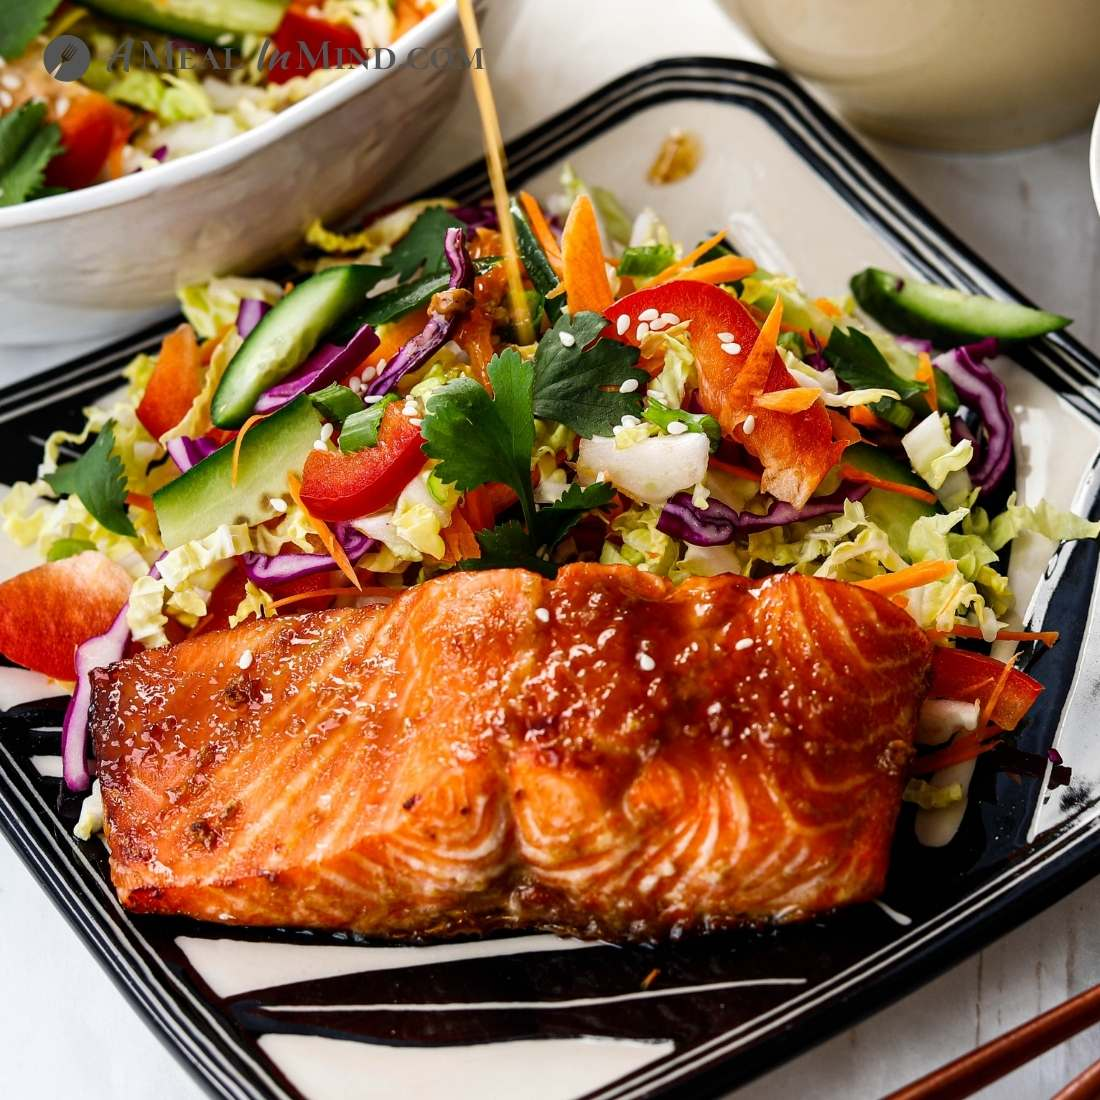 air fryer hoisin salmon in patterned plate with slaw